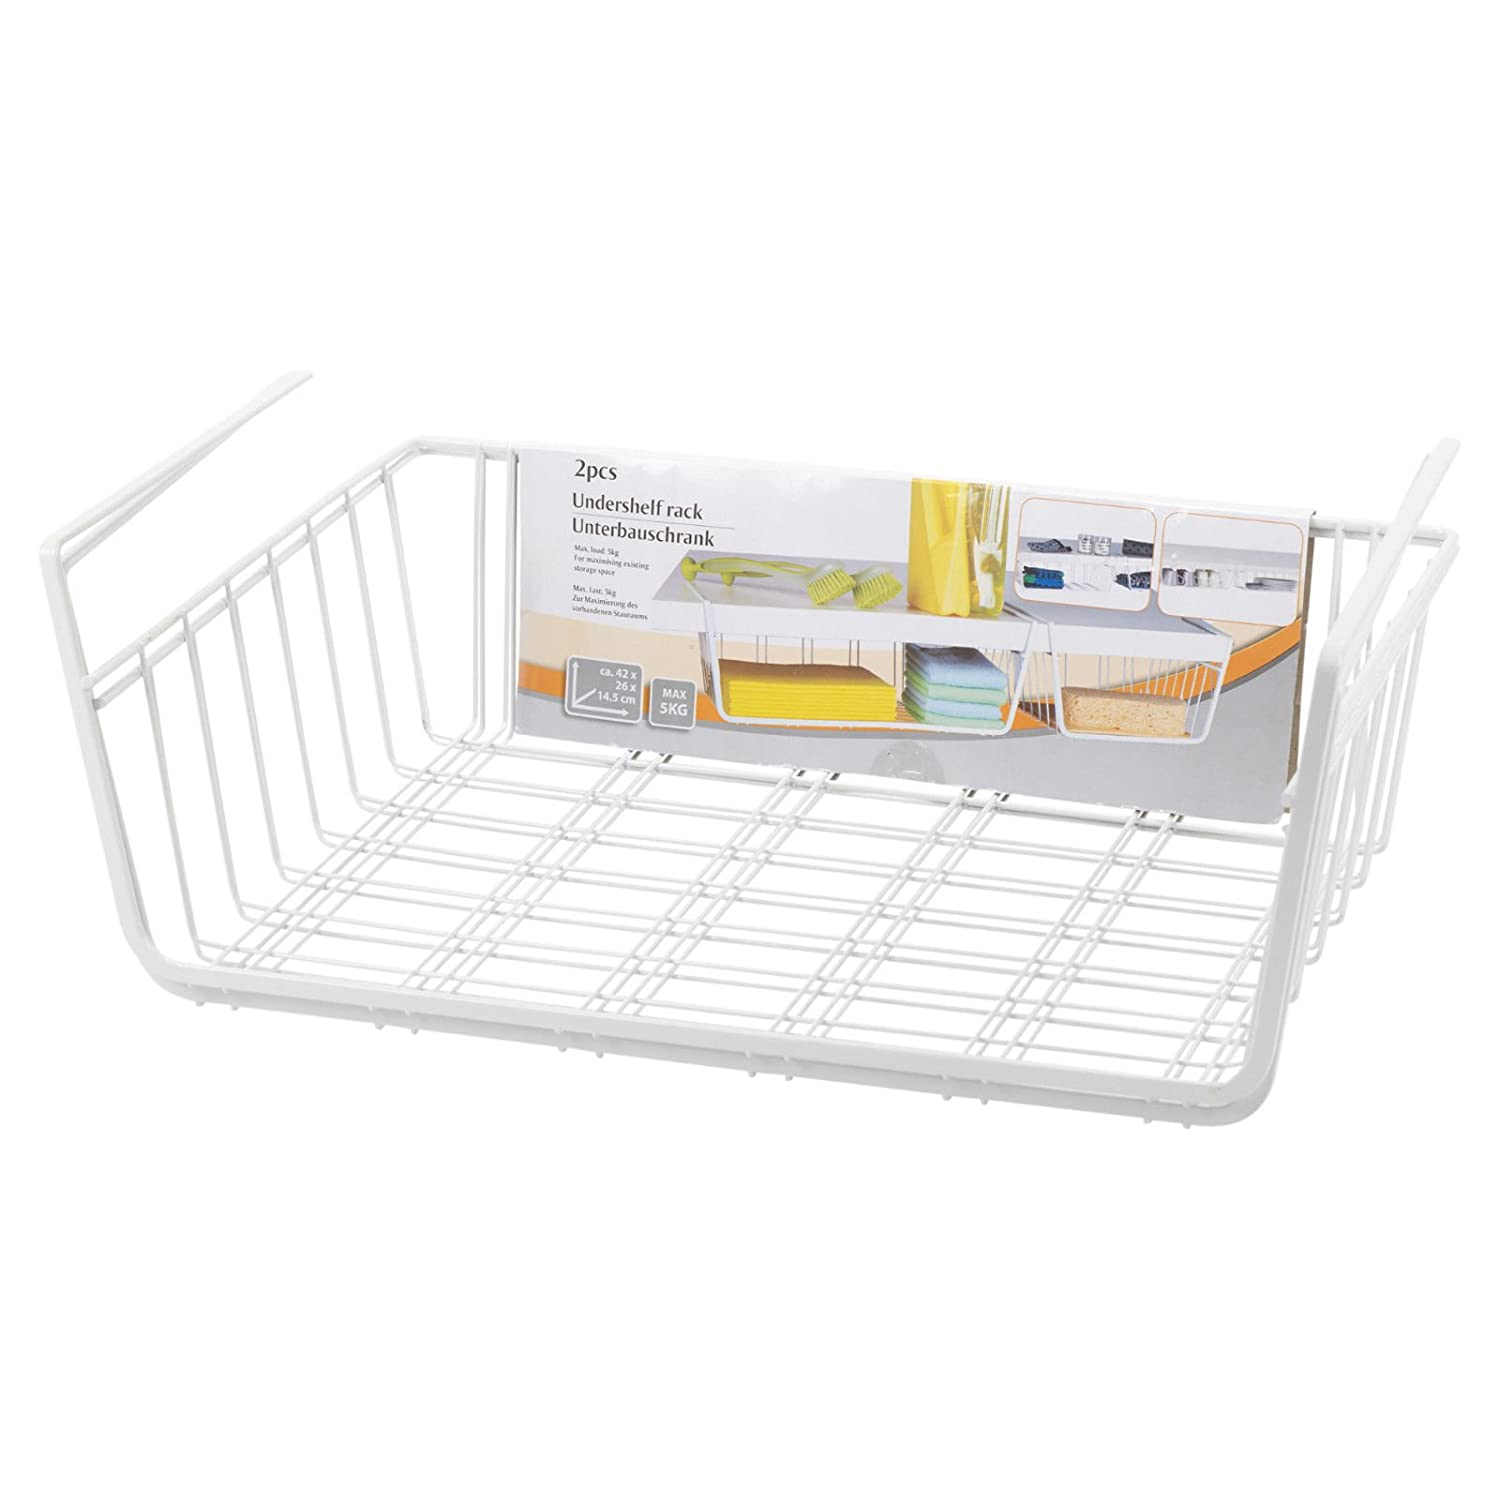 Kabalo Set of 2 Under Shelf Storage Basket Rack Kitchen Bathroom Organiser Unit